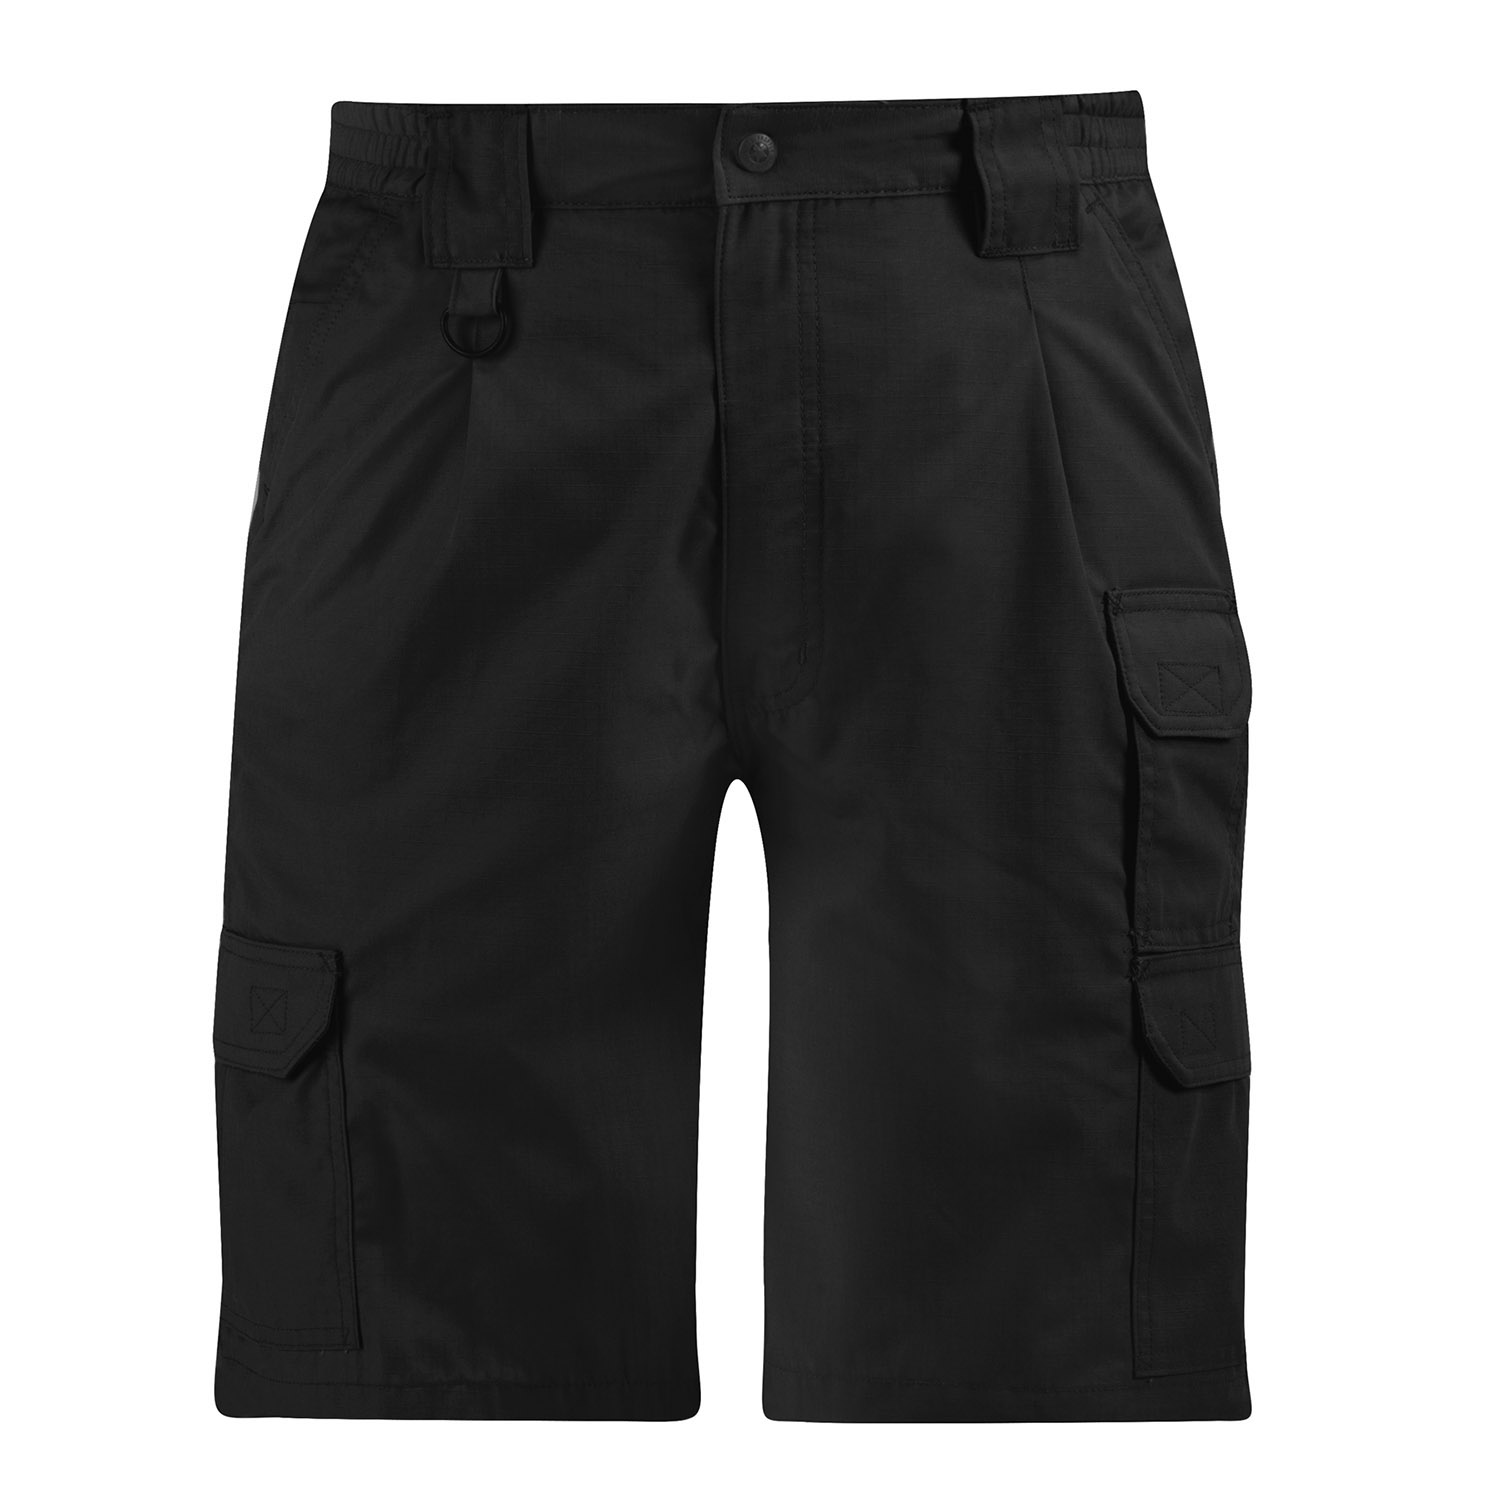 Propper Stain Resistant Tactical Shorts